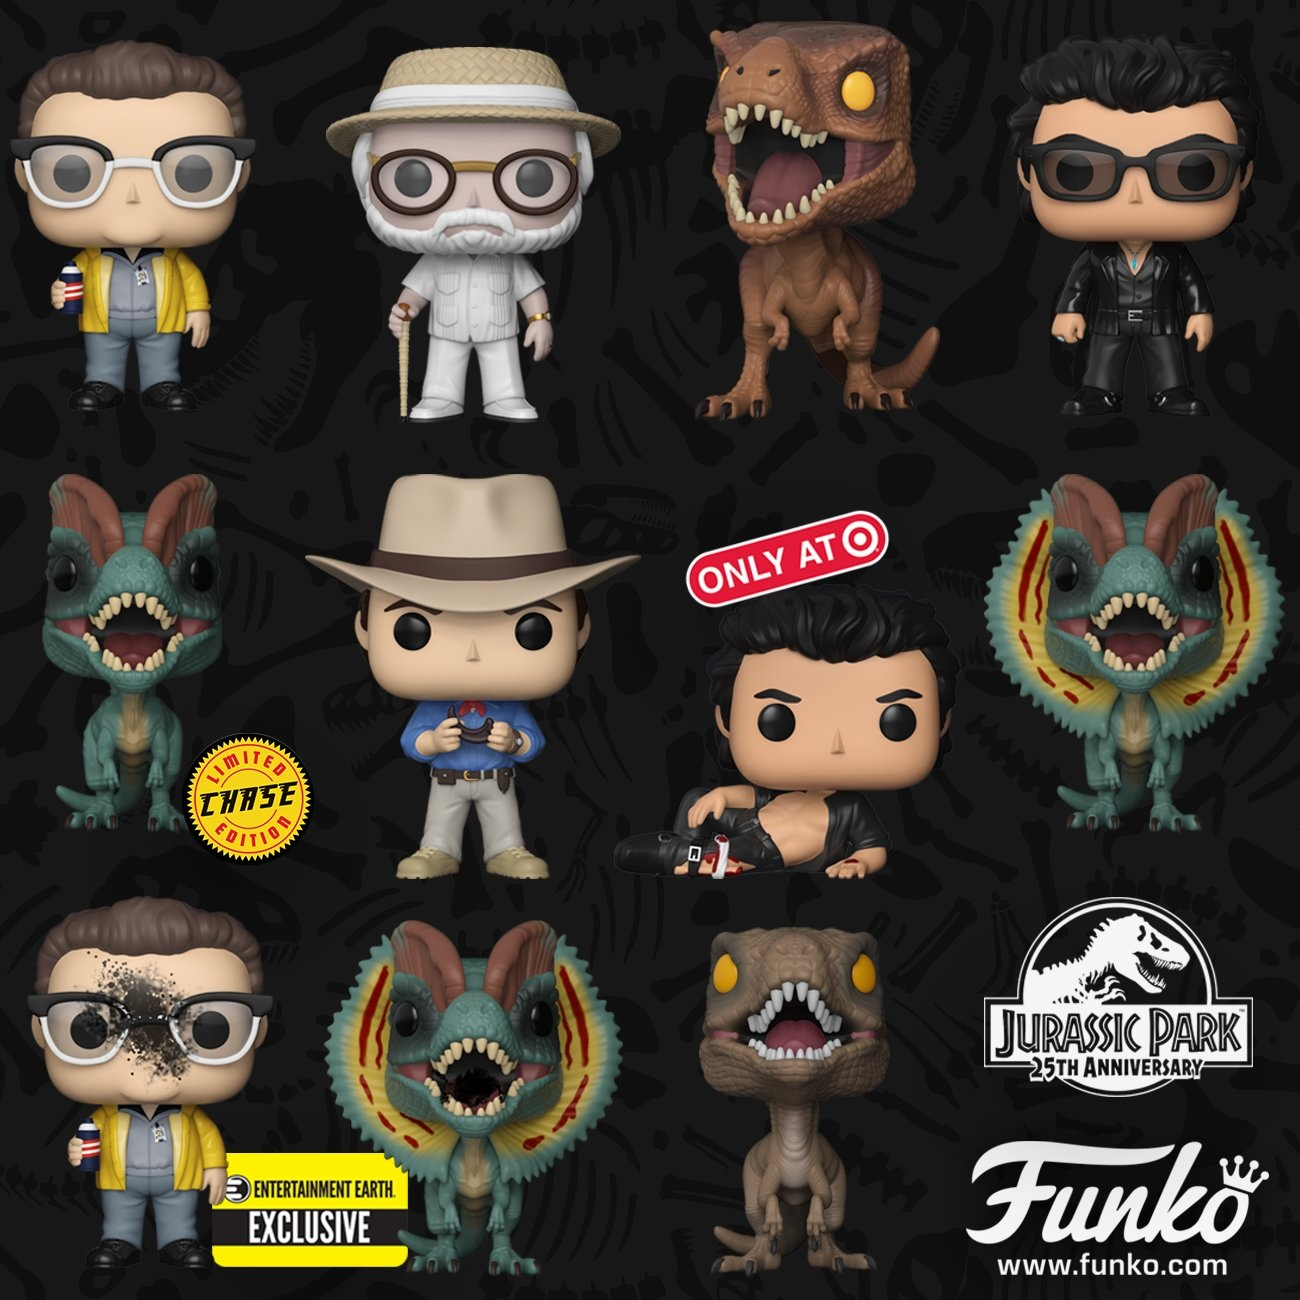 Jurassic Park Pop Vinyl Exclusives Include Shirtless